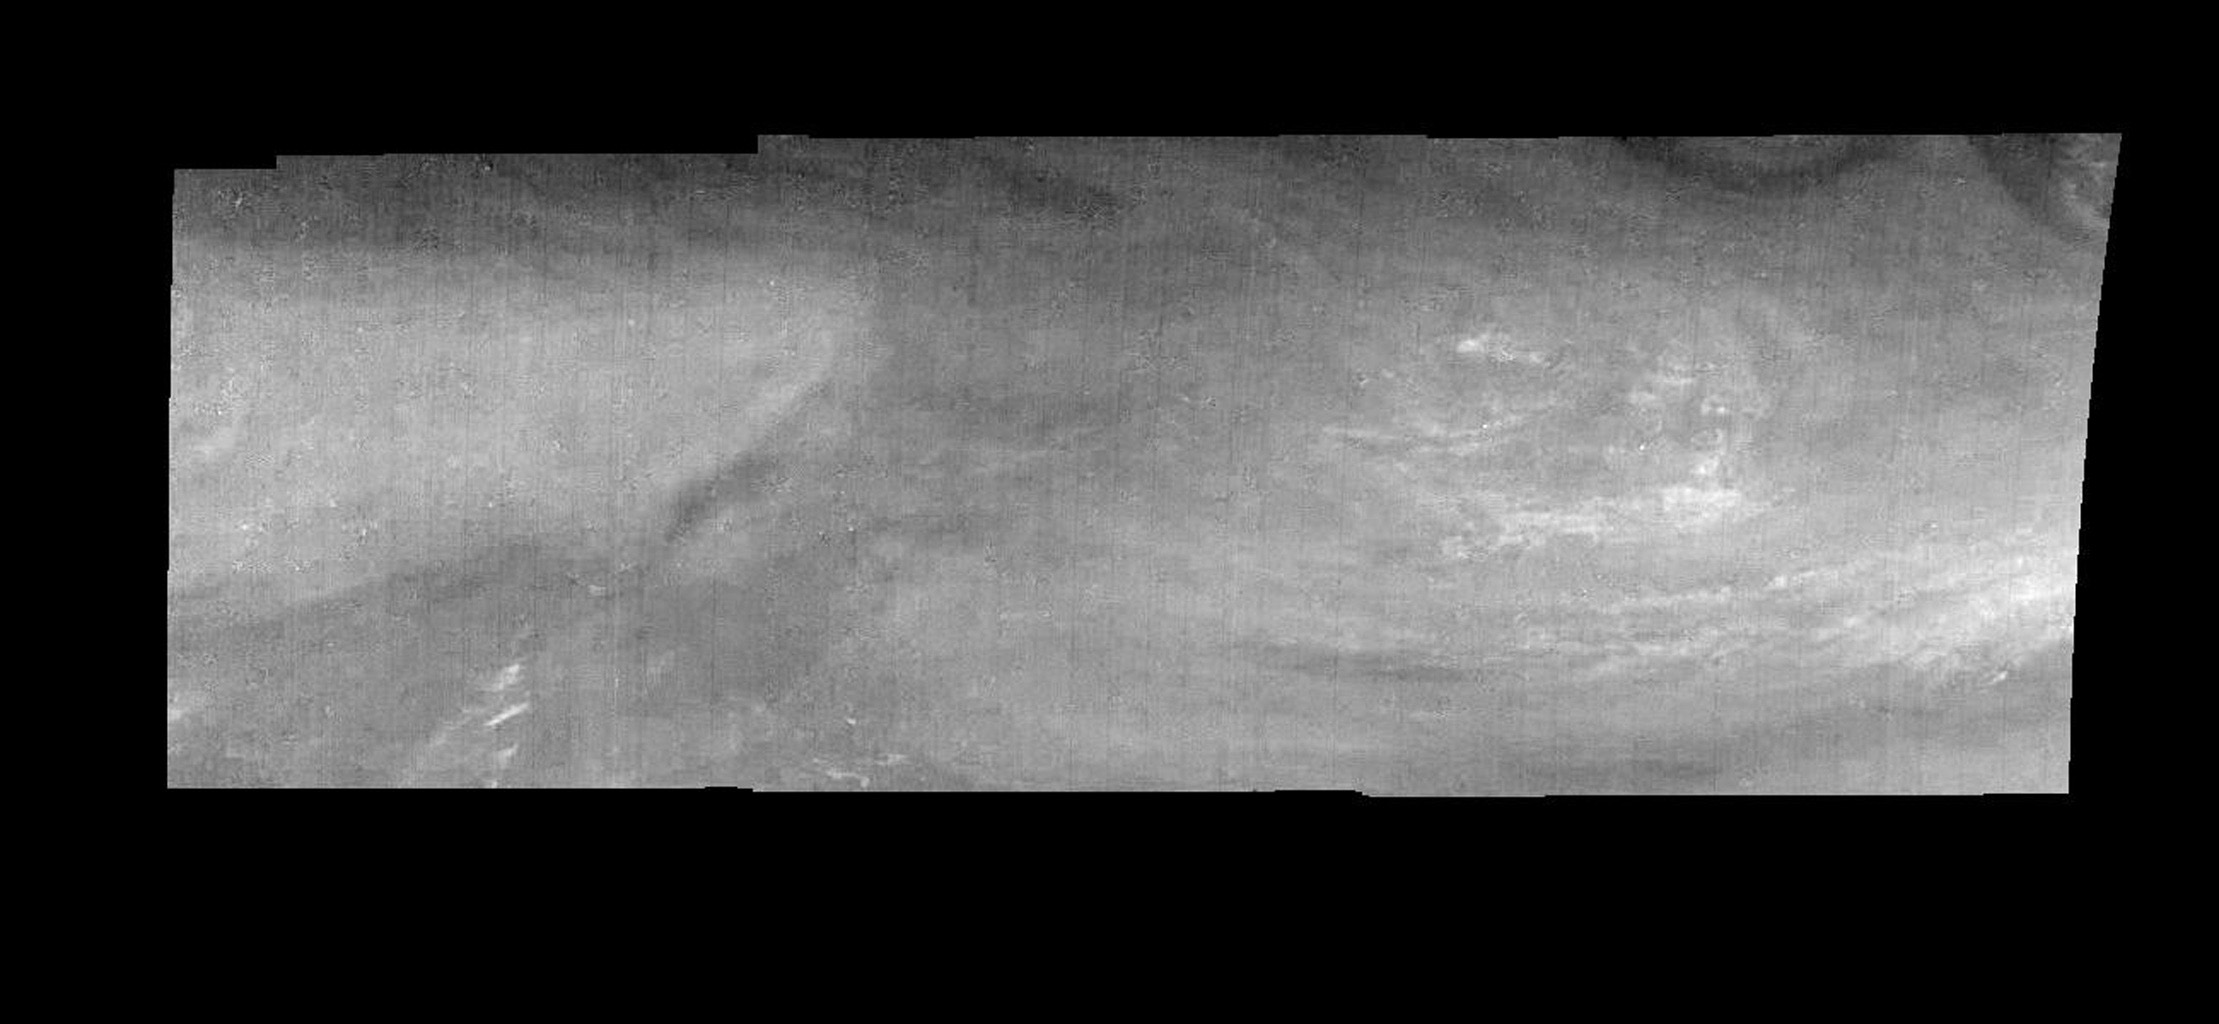 Mosaic of an equatorial 'hotspot' on Jupiter at 889 nanometers (nm). The mosaic covers an area of 34,000 kilometers by 11,000 kilometers. These images were taken on December 17, 1996 by the Solid State Imaging system aboard NASA's Galileo spacecraft.